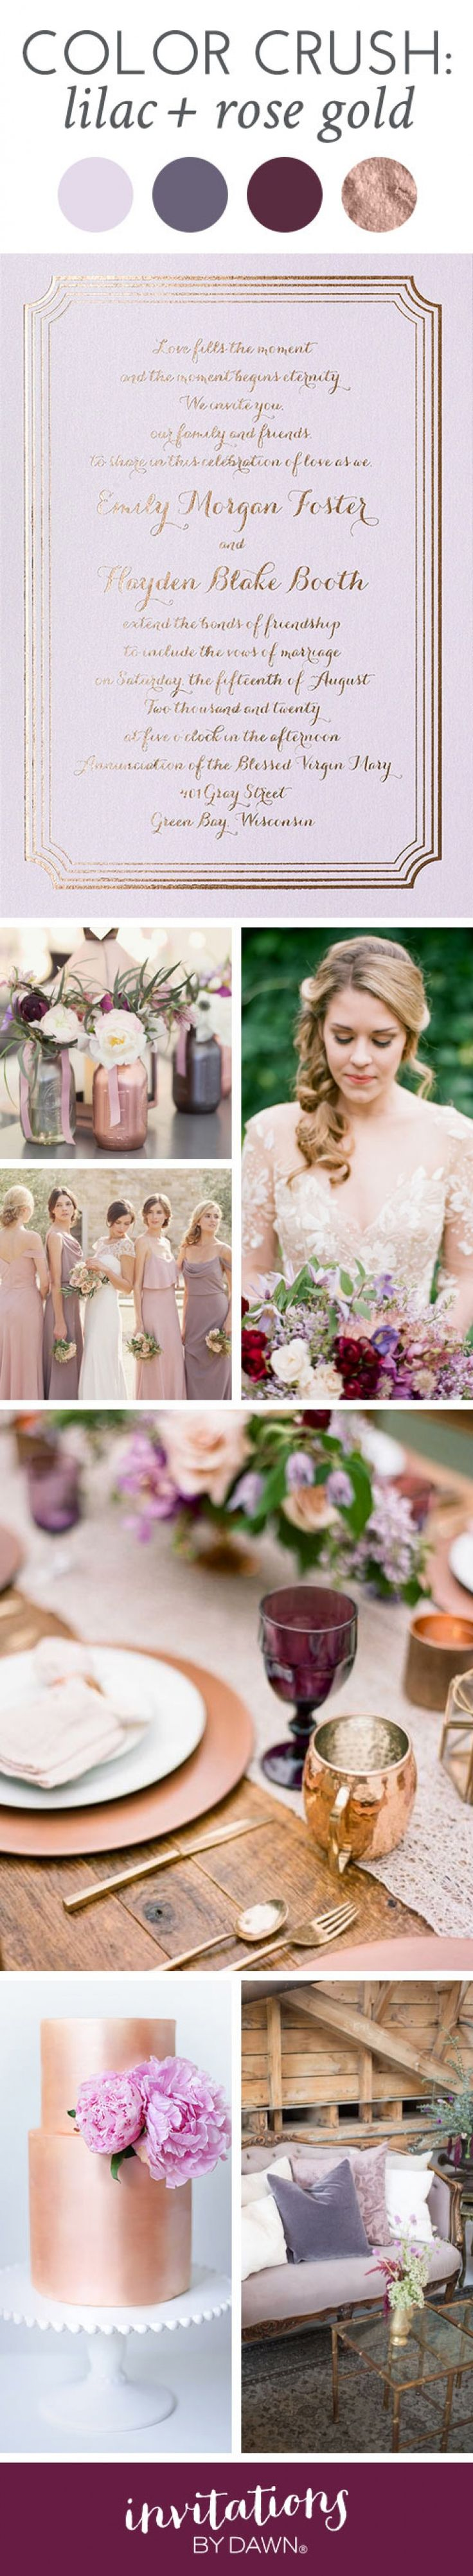 Color Crush: Lilac and Rose Gold